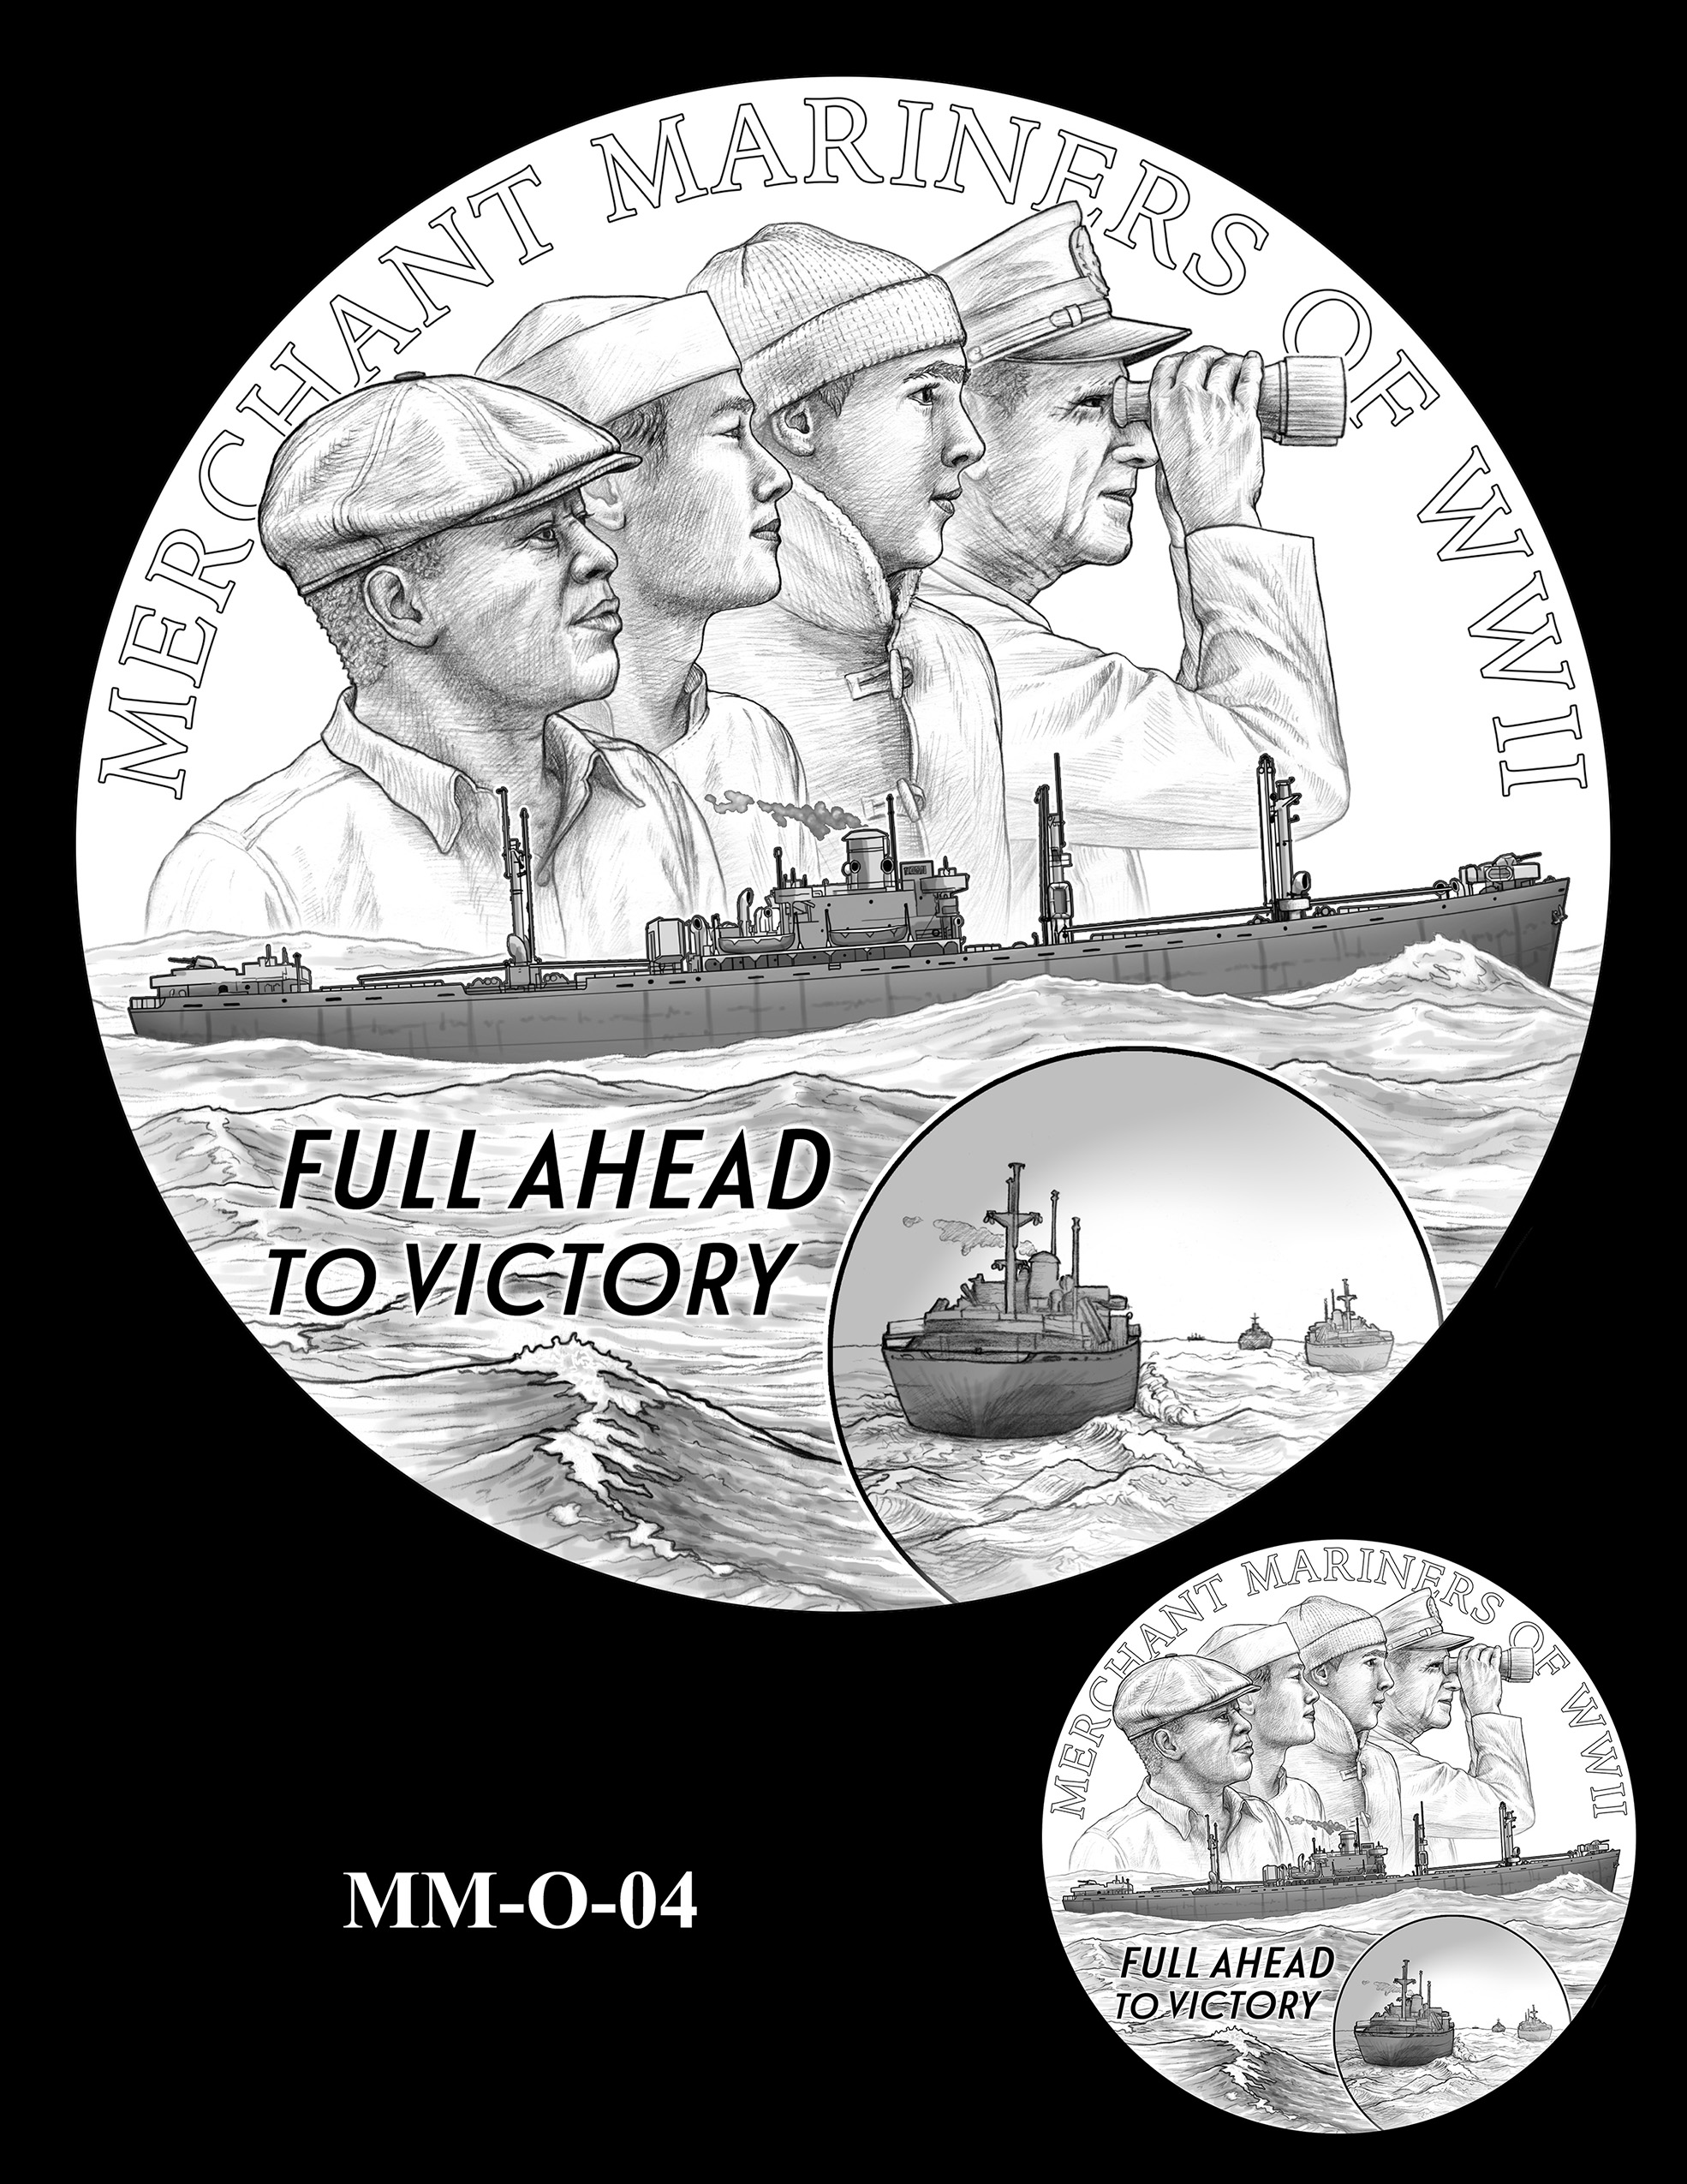 MM-O-04 -- Merchant Mariners of World War II Congressional Gold Medal